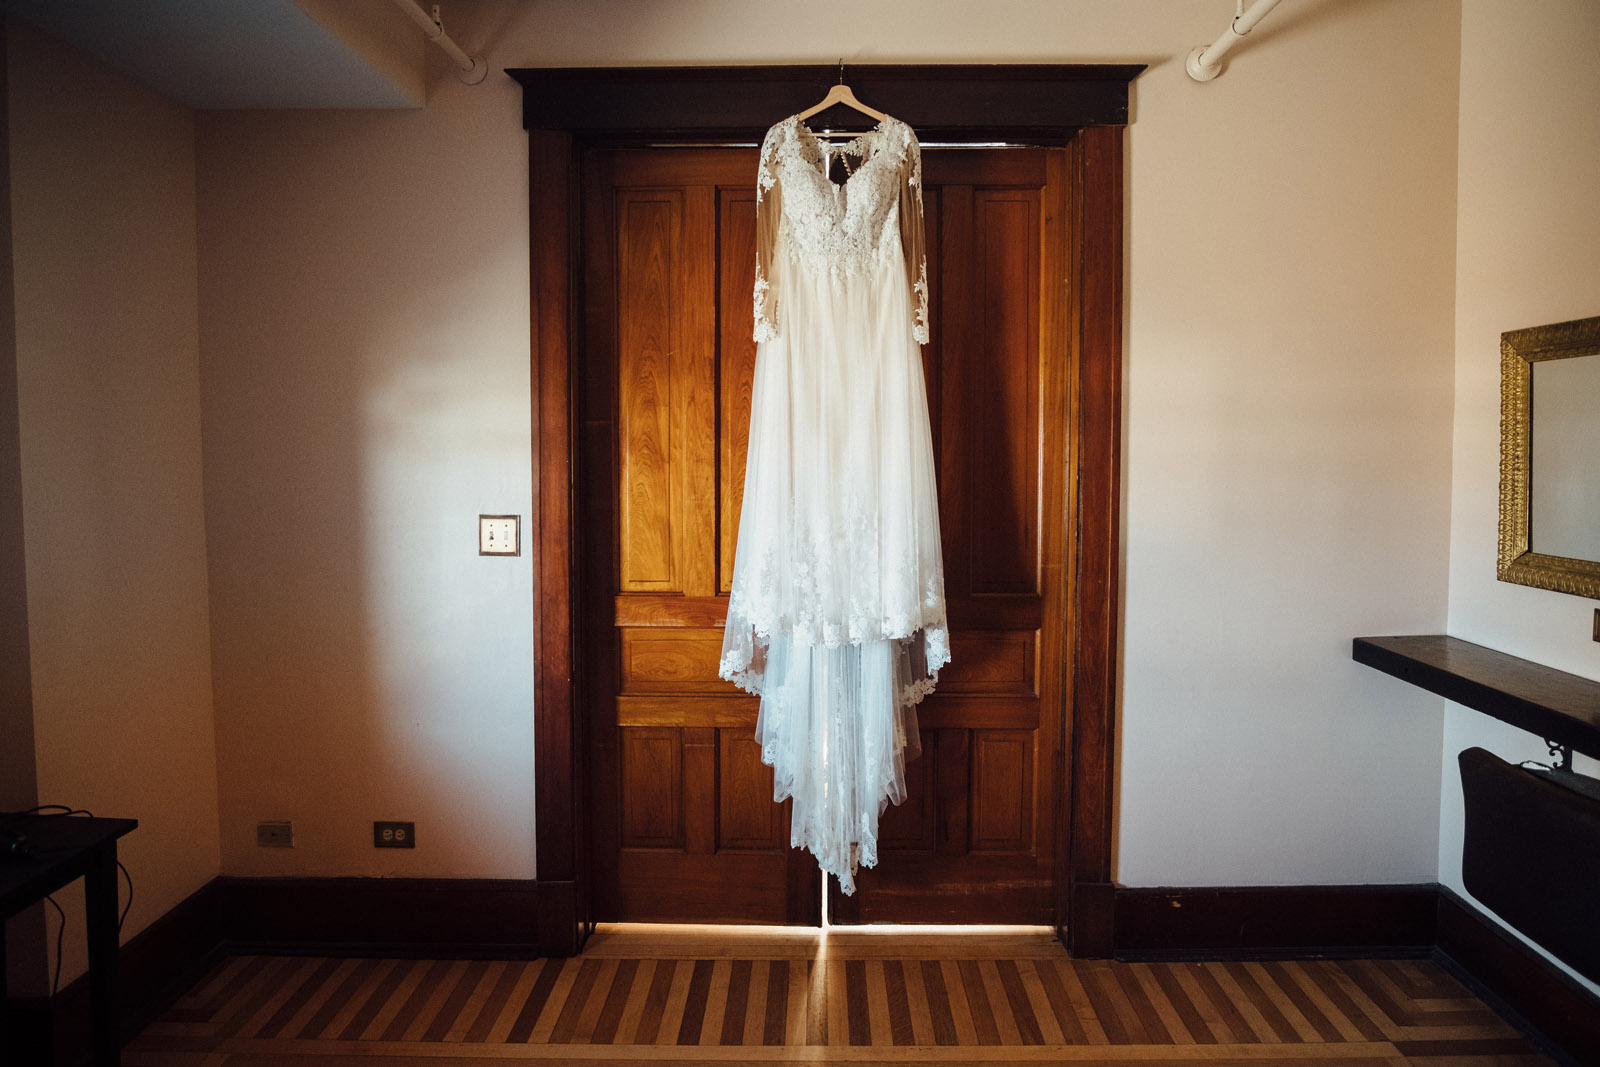 The Haight wedding dress